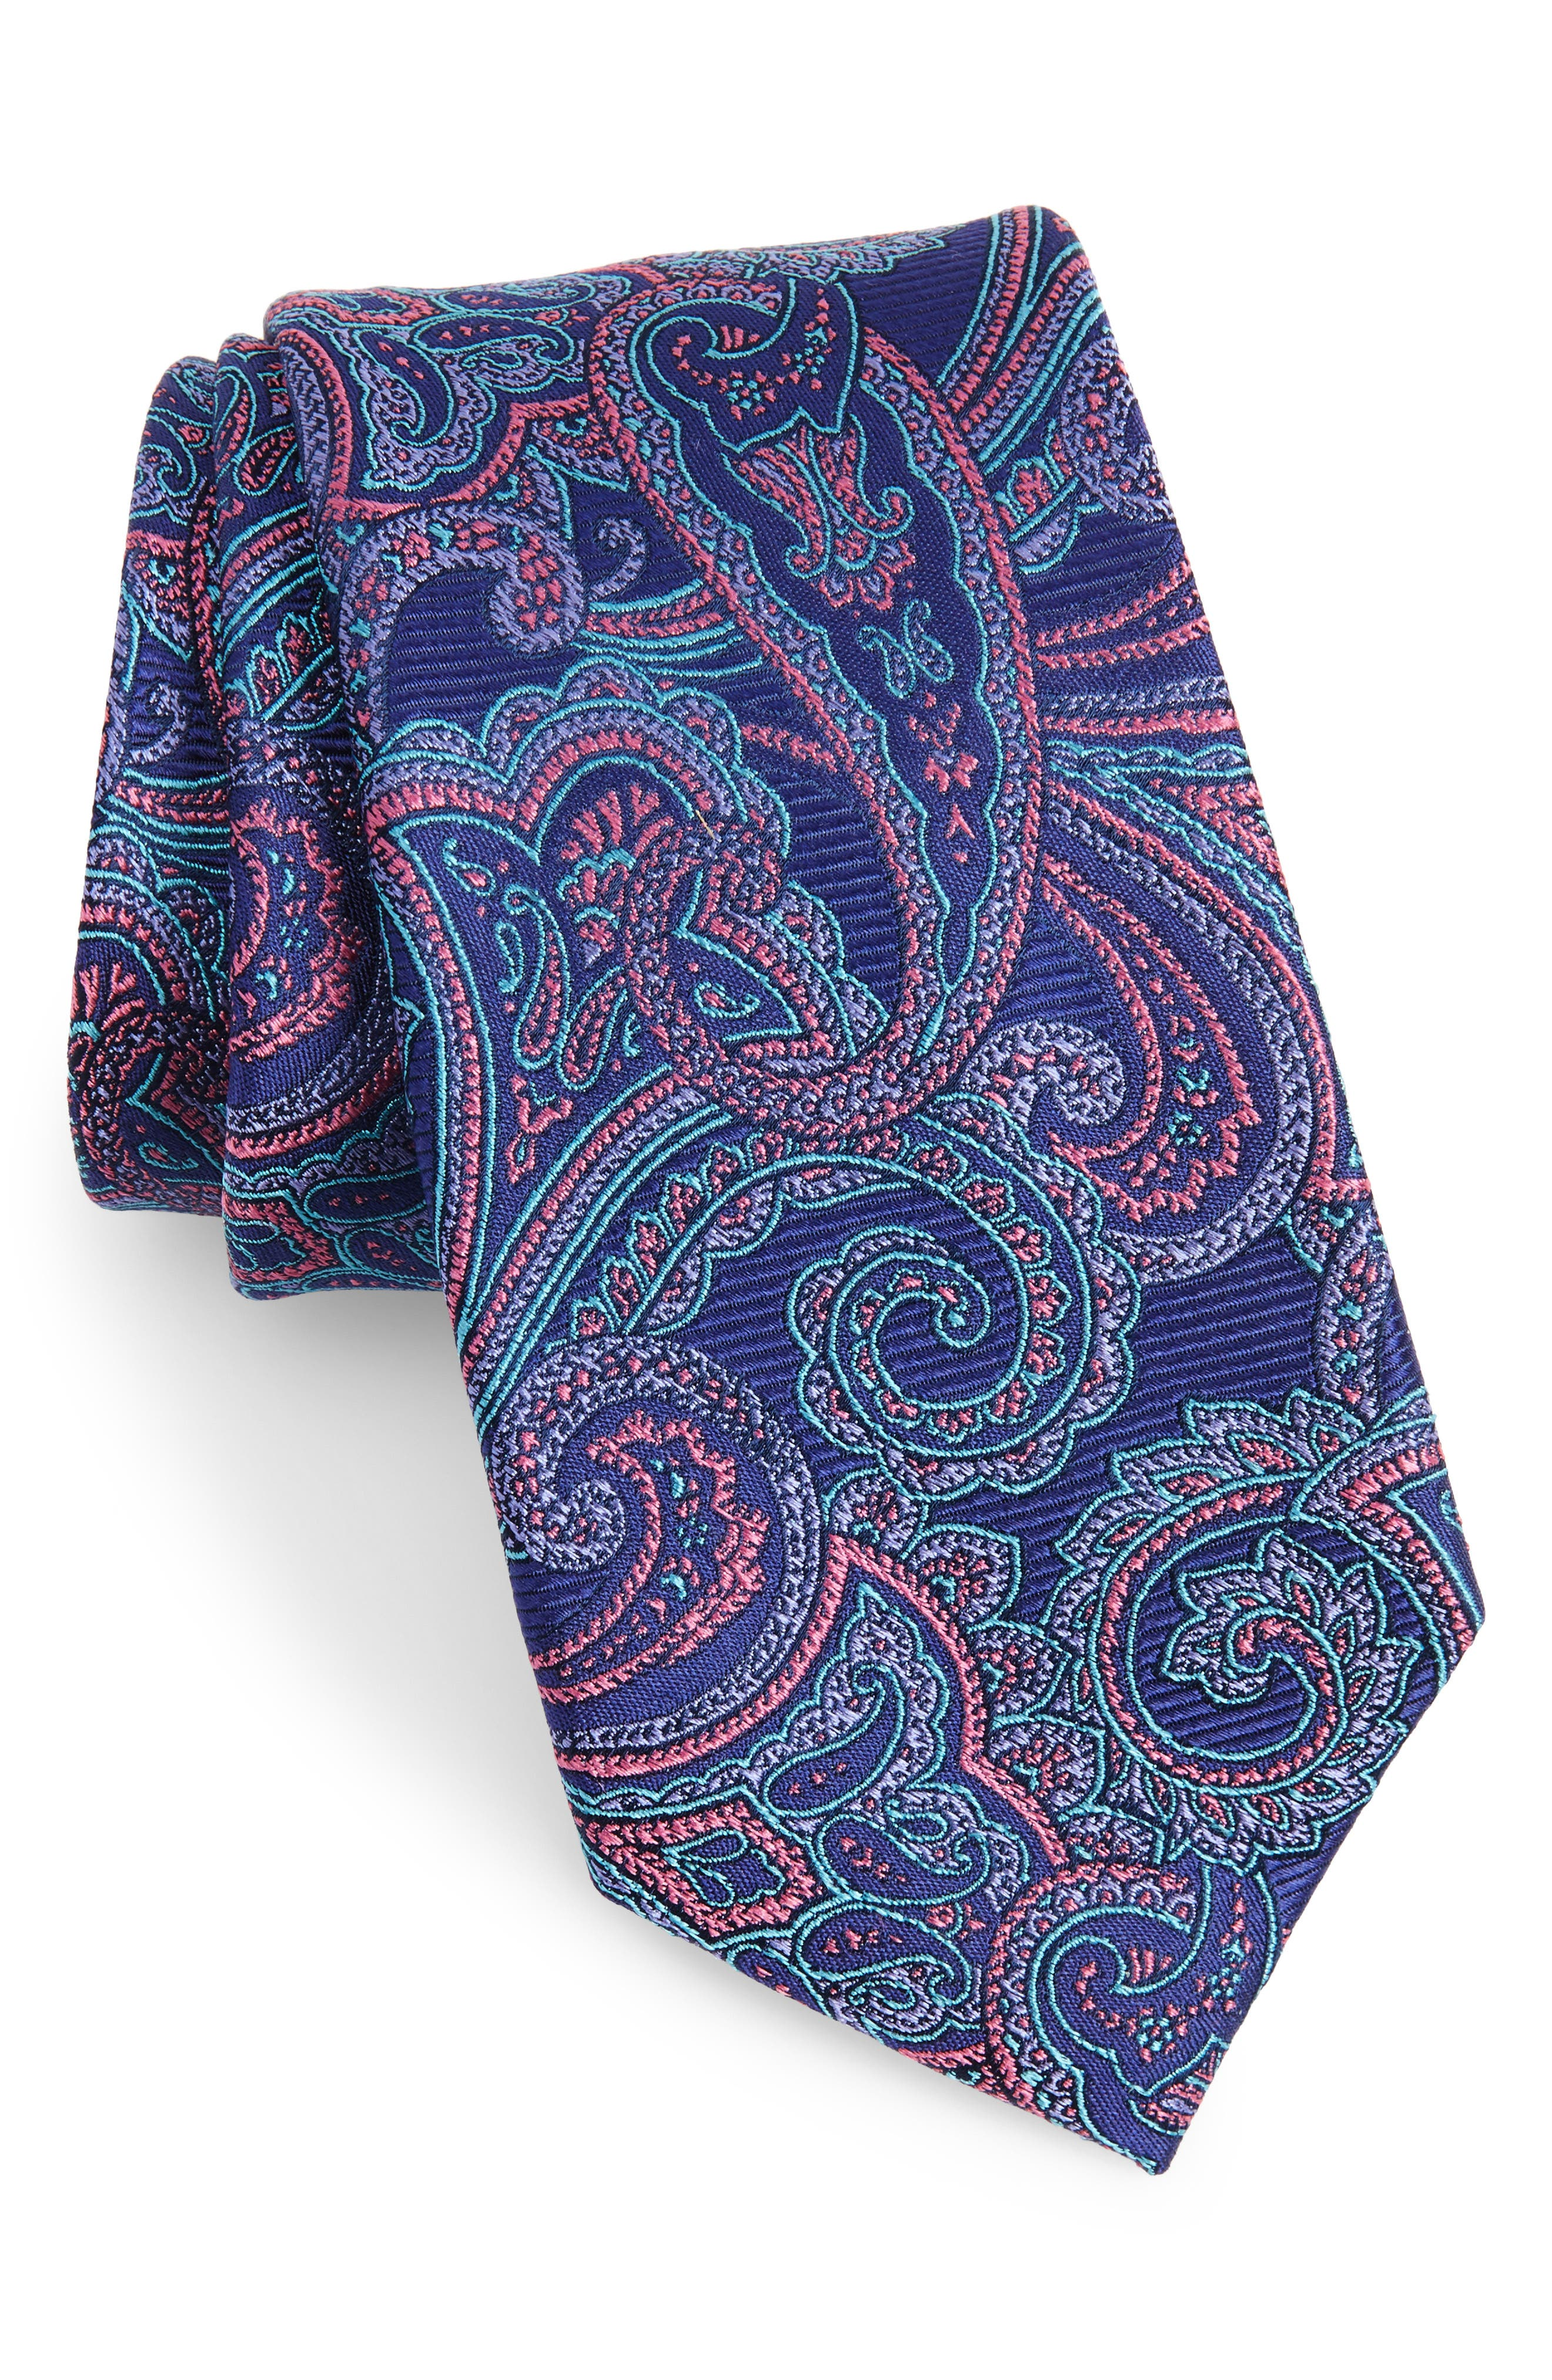 Alternate Image 1 Selected - Nordstrom Men's Shop Avalon Paisley Silk Tie (X-Long)